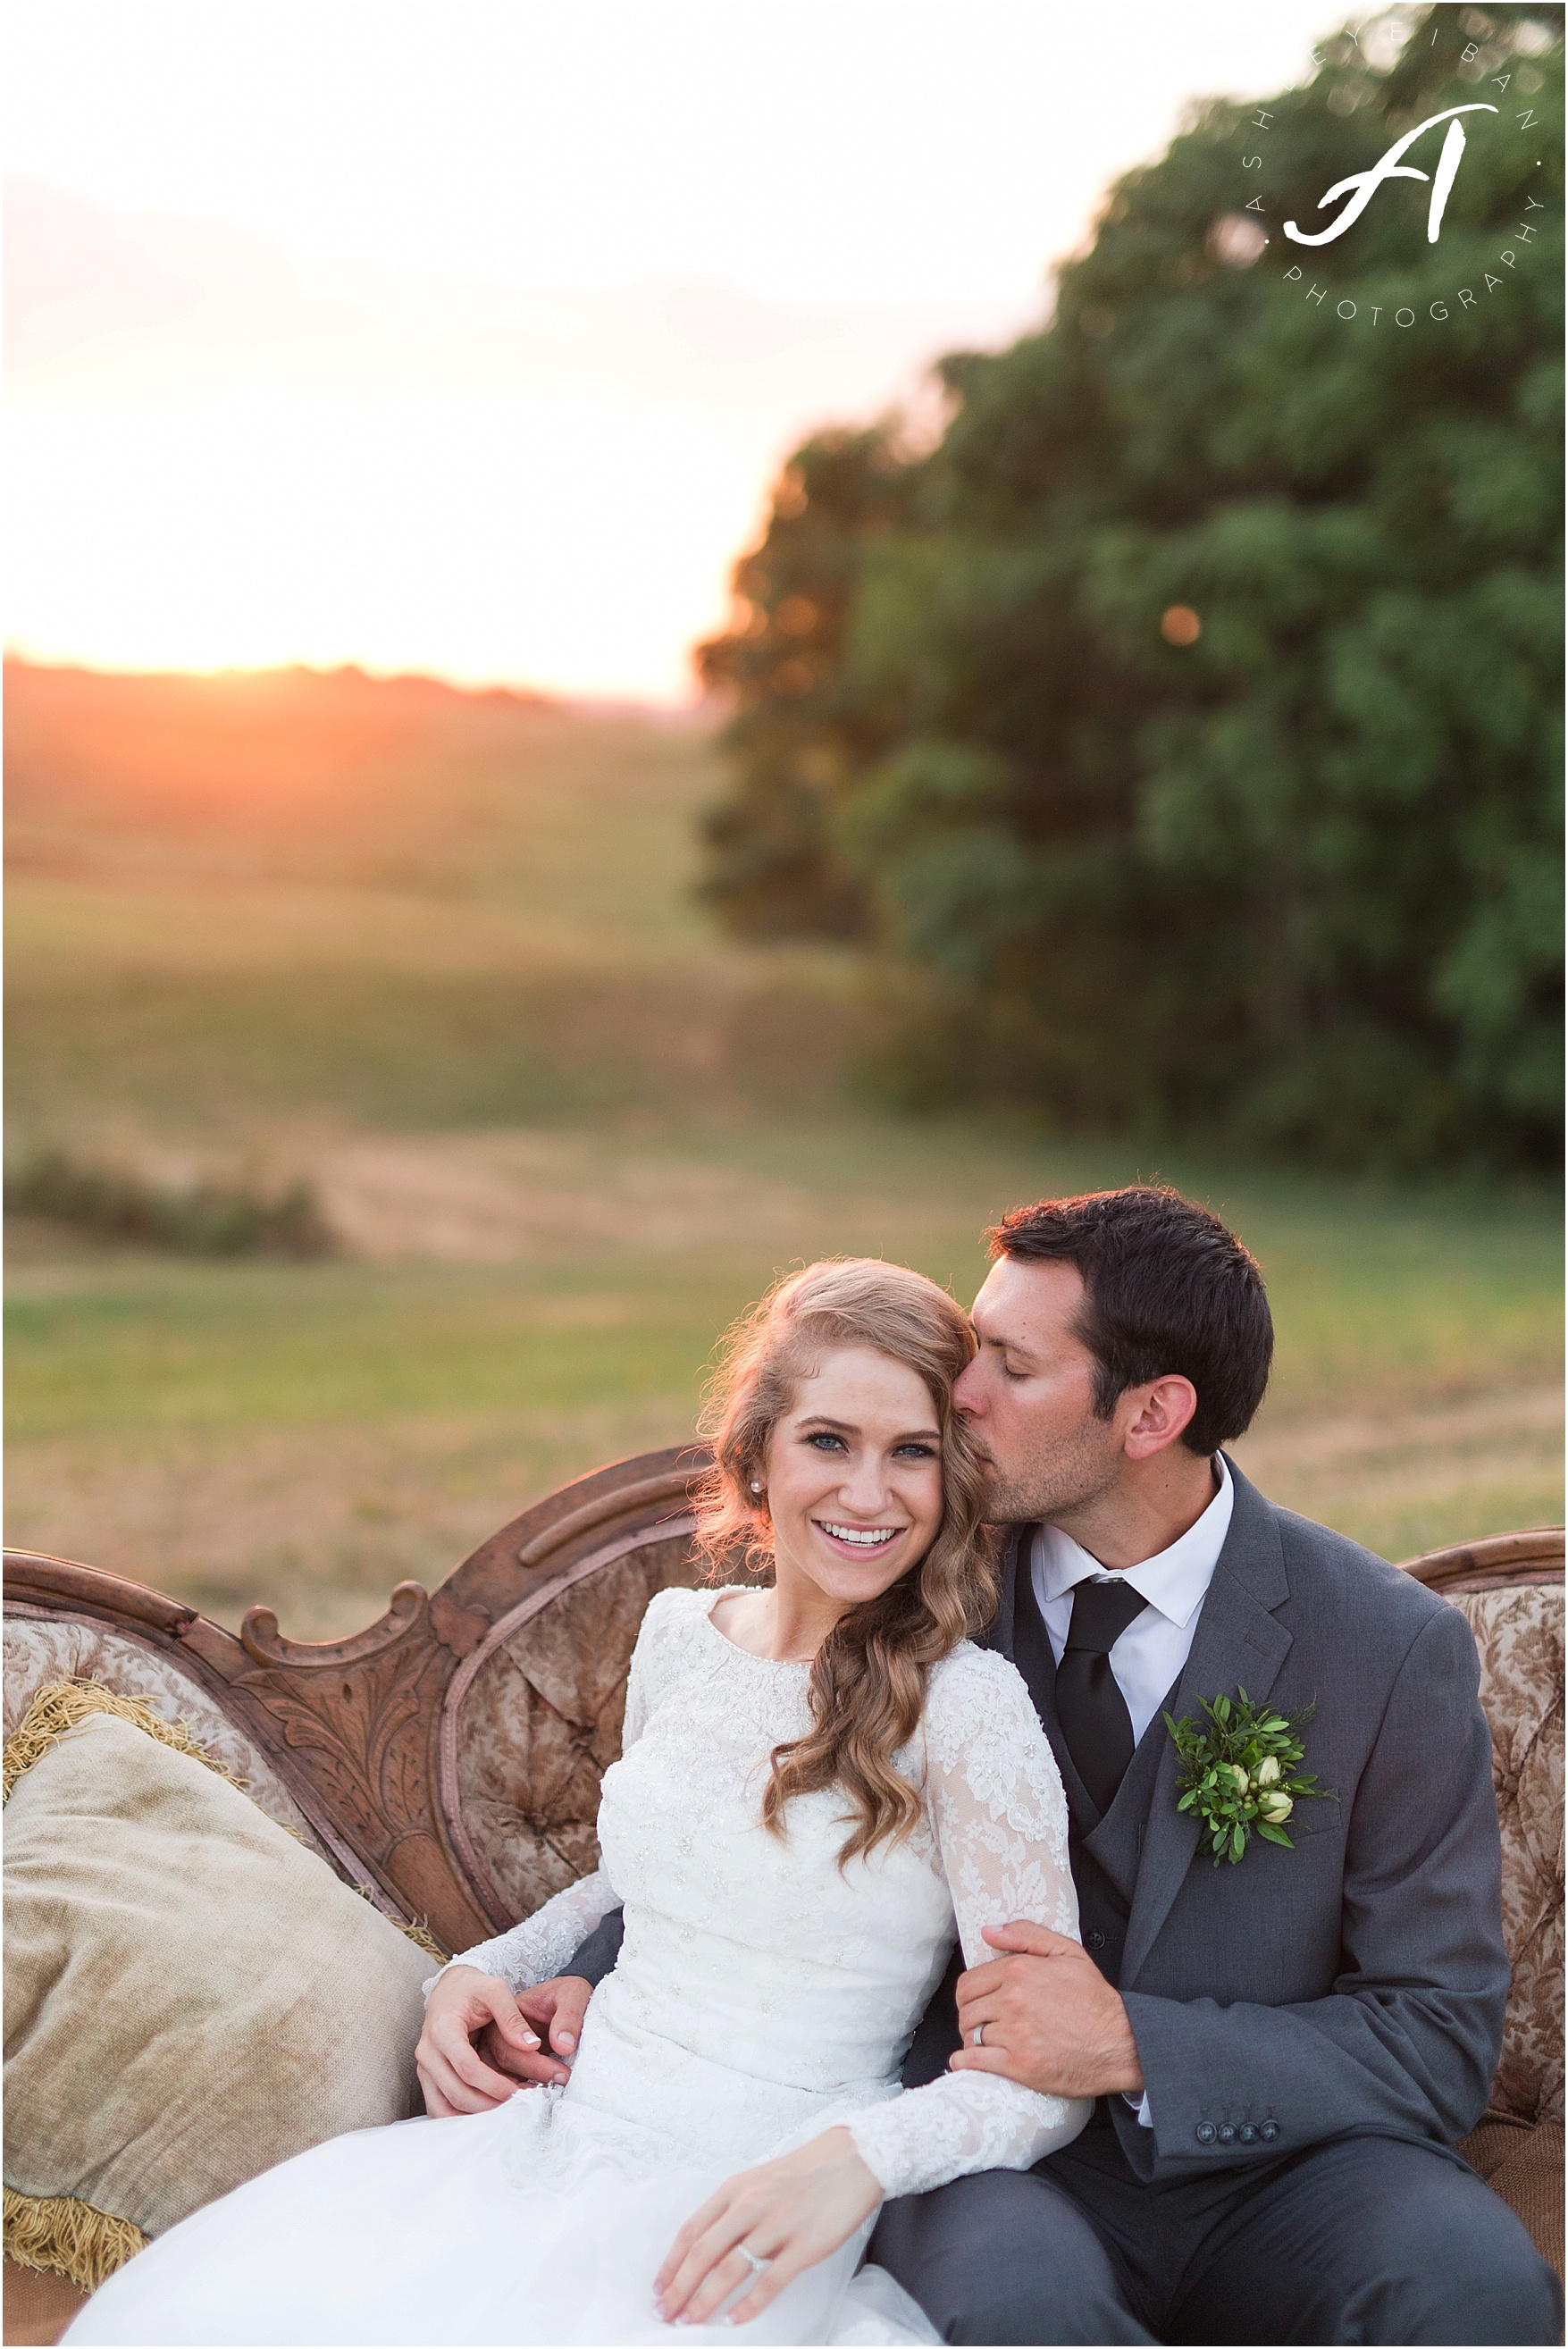 FarmVille Wedding Photographer || Charlottesville and Lynchburg Wedding Photographers || Ashley Eiban Photography || www.ashleyeiban.com